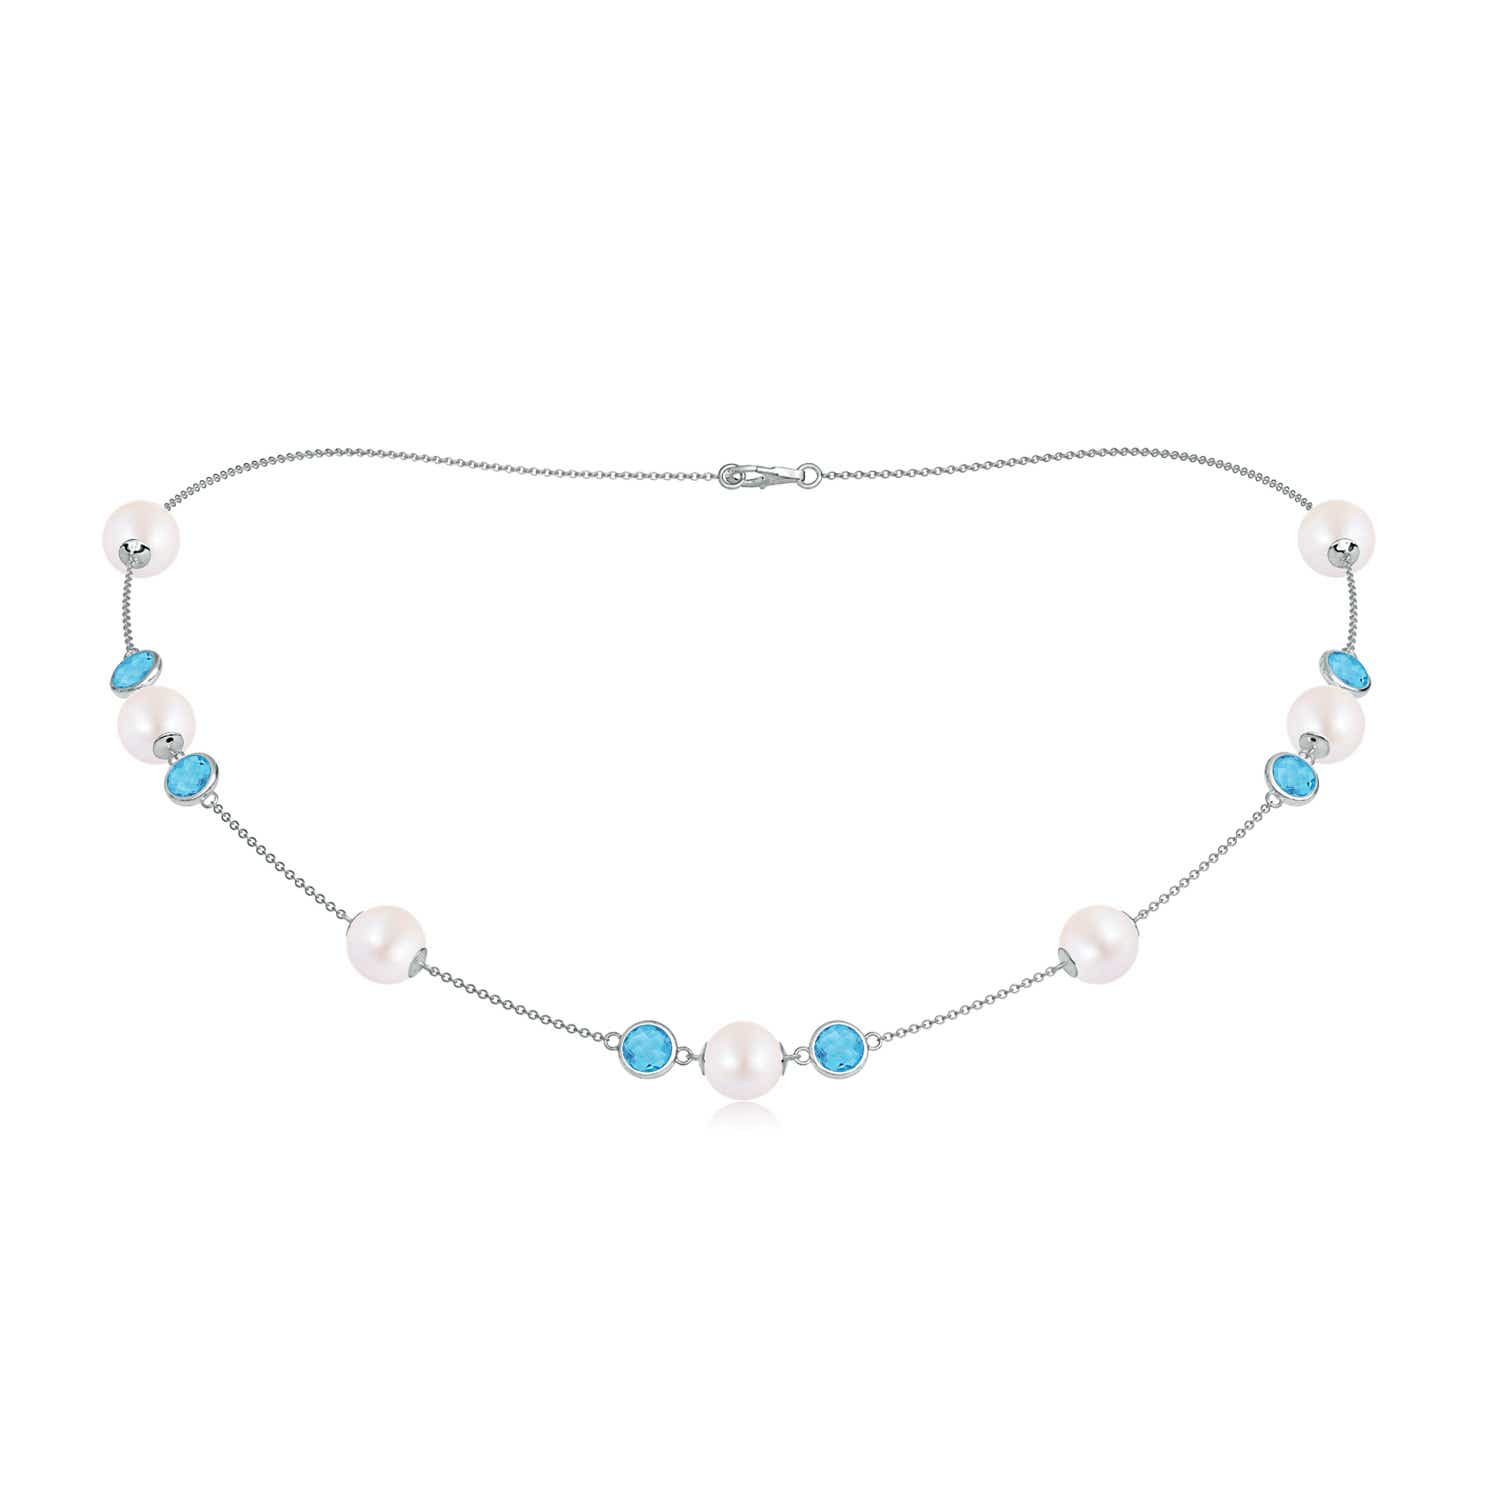 16 Akoya Cultured Pearl & Swiss Blue Topaz Station Necklace